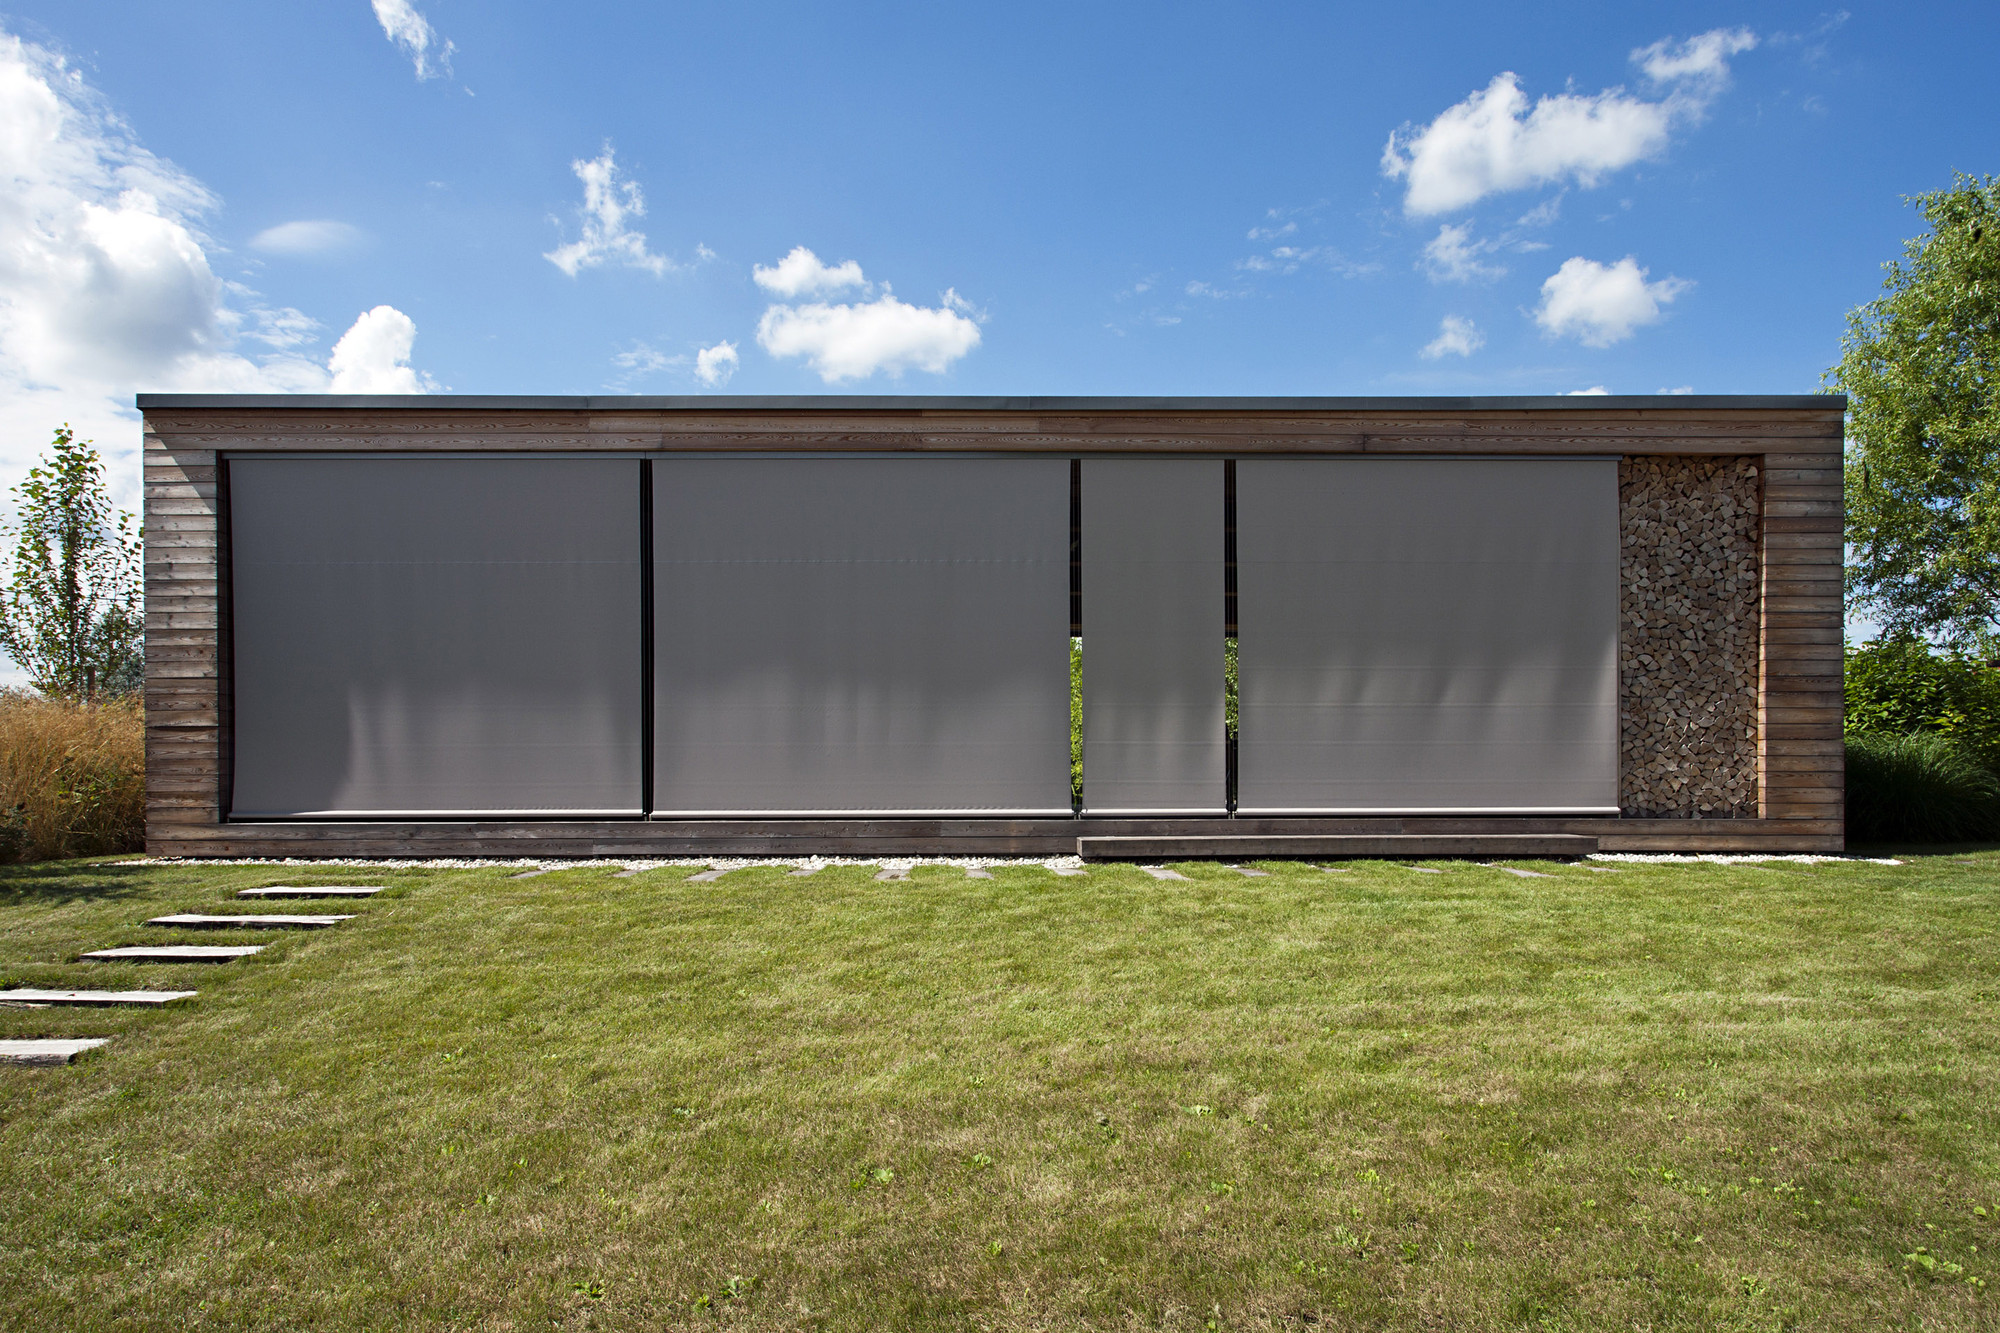 Holiday Cottage T 243 Th Project Architect Office Archdaily